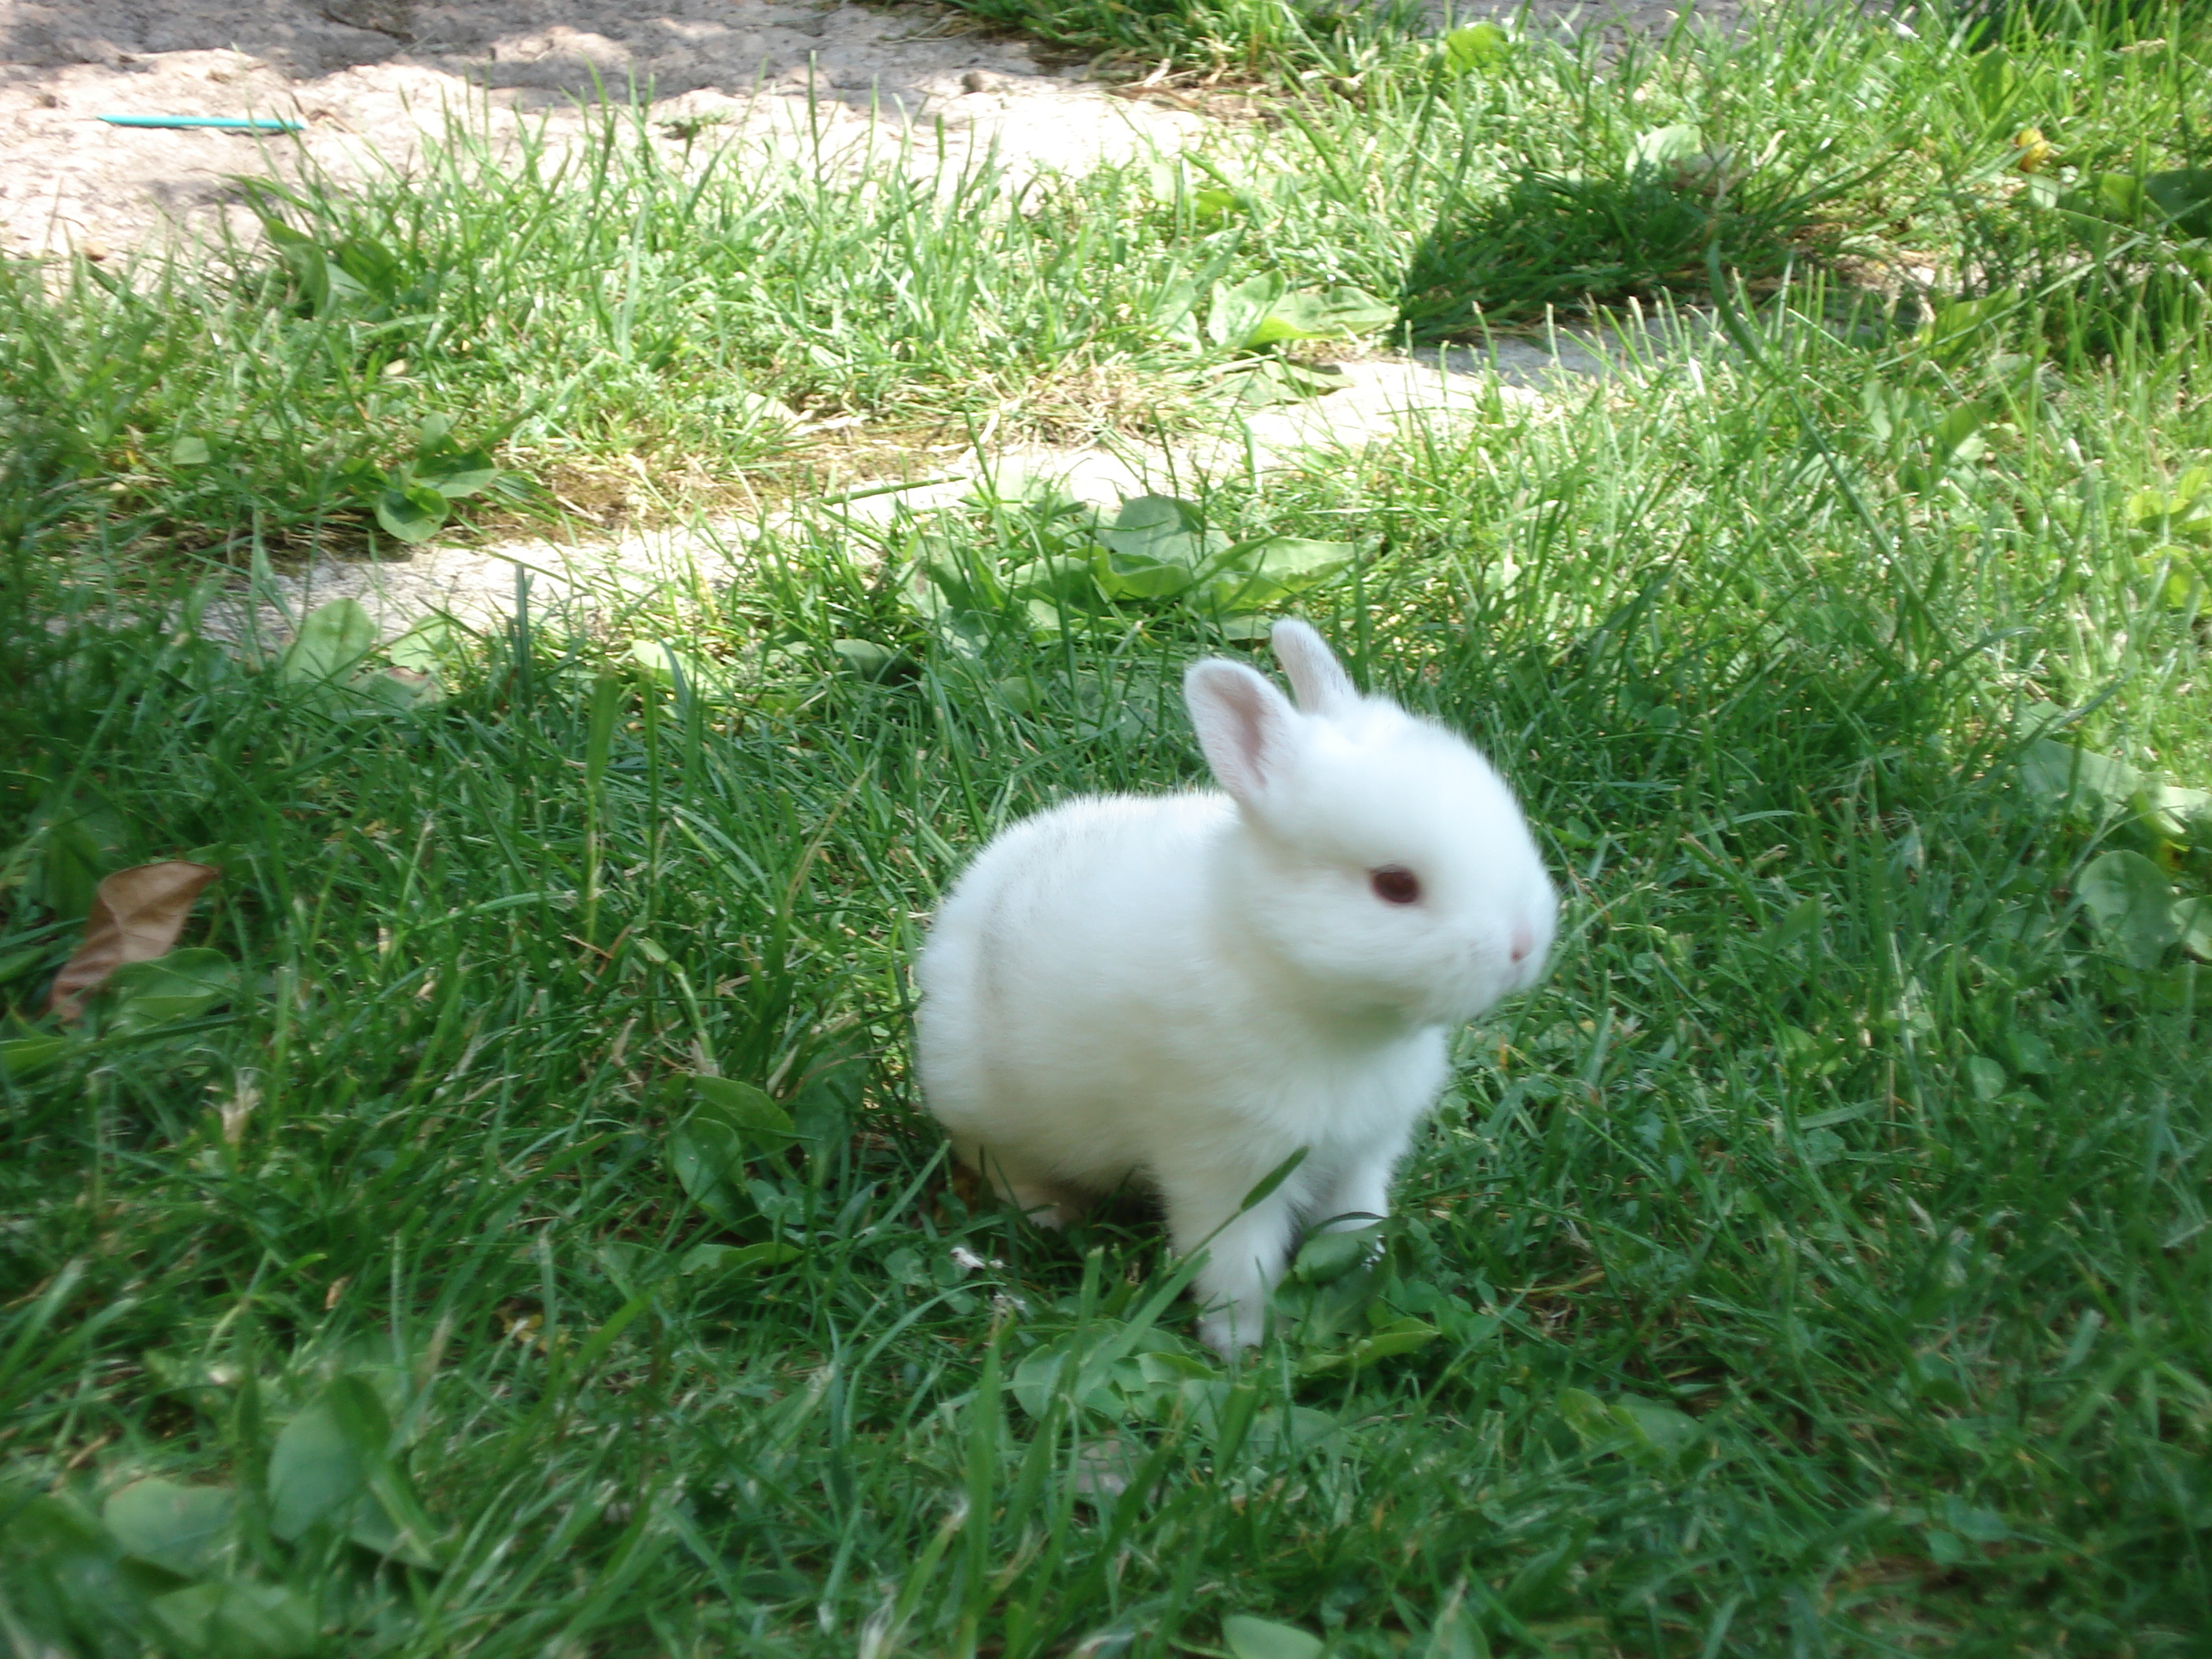 Our baby rabbit